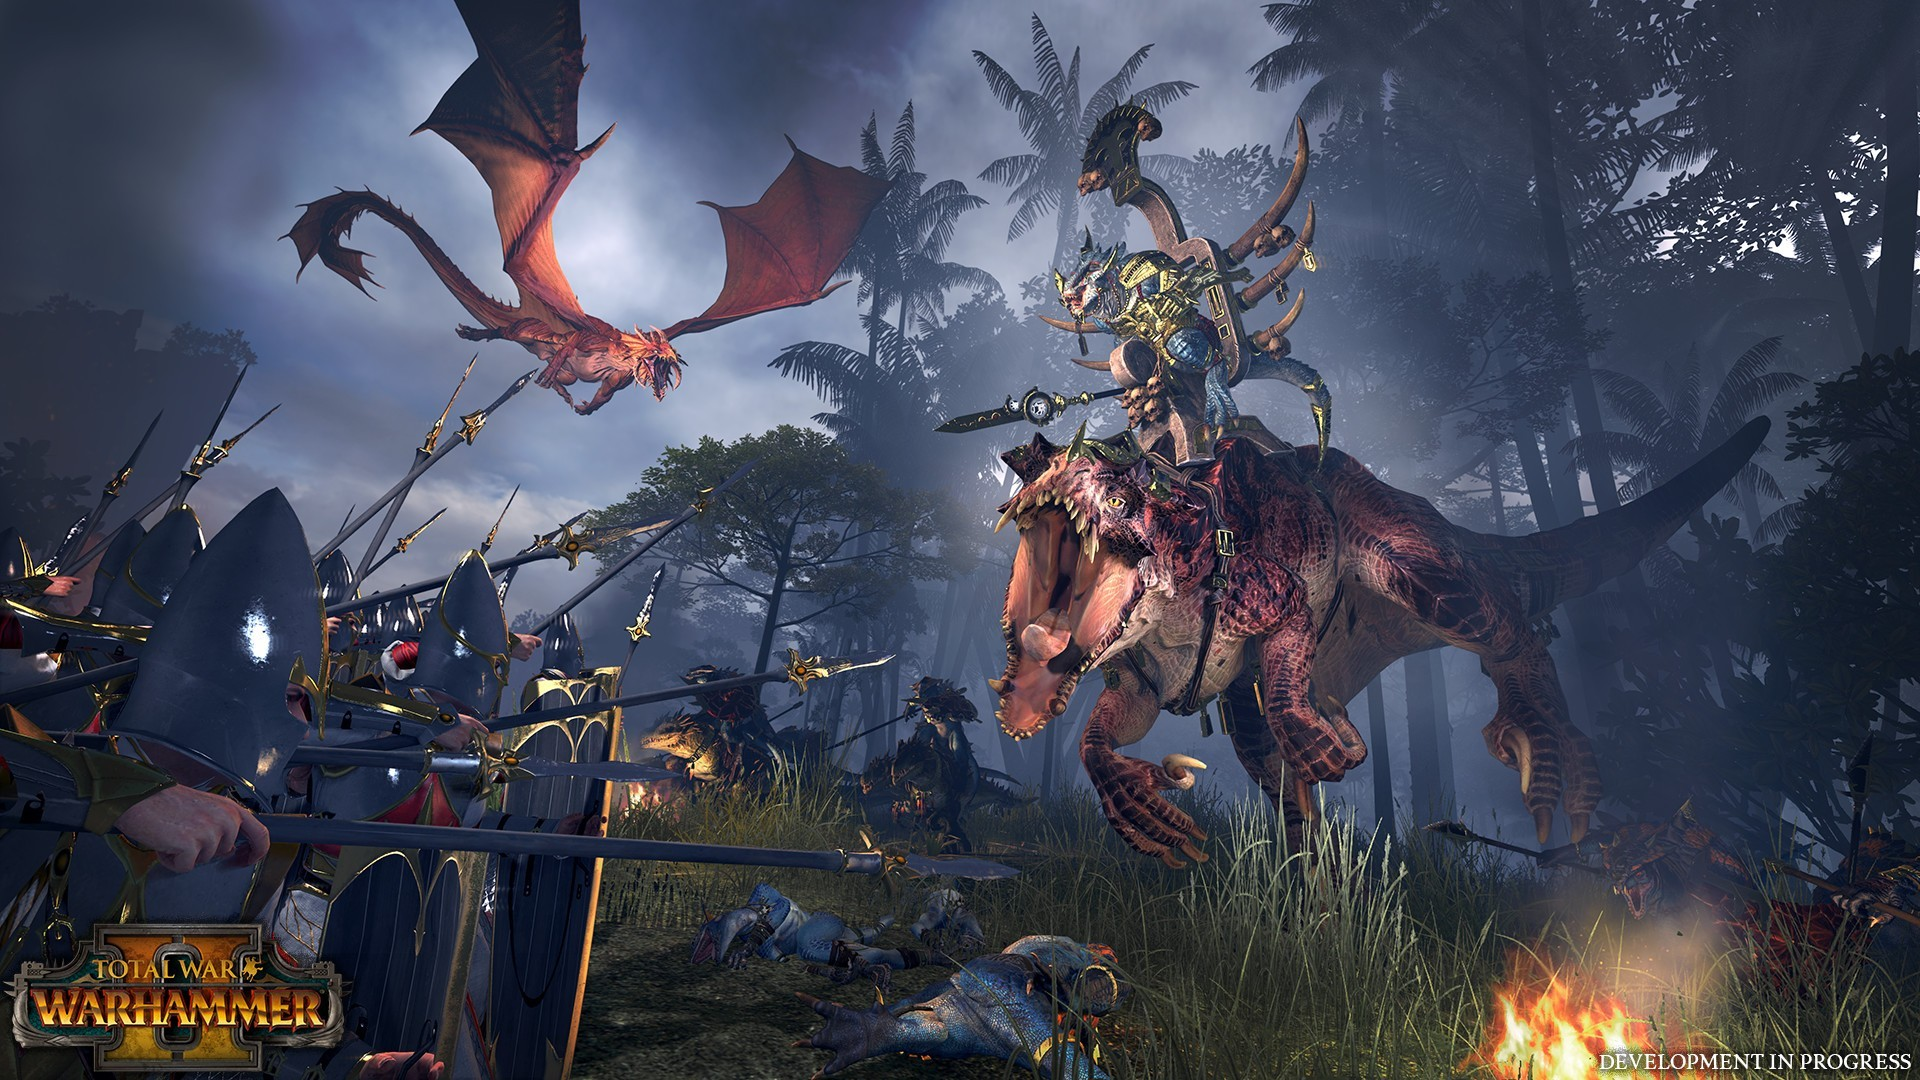 Buy Total War Warhammer Ii The Hunter The Beast Steam The wandering soul tries to find himself in the battlefield with only one reason to live. total war warhammer ii the hunter the beast europe